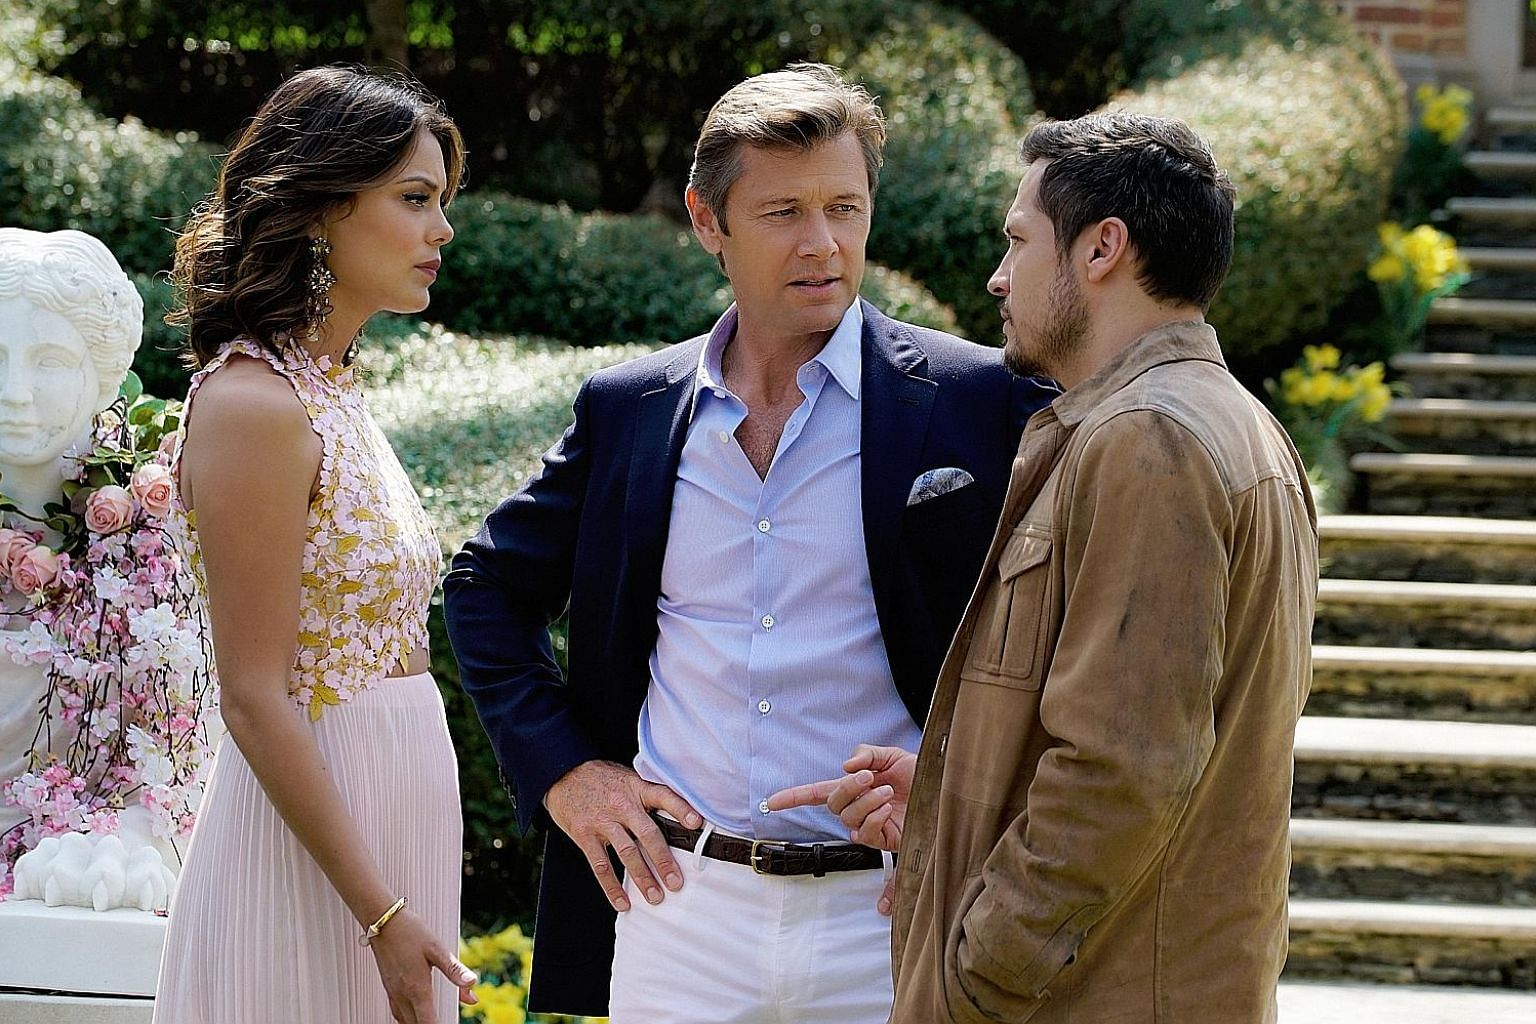 (From left) Nathalie Kelley, Grant Show and Nick Wechsler in the reboot of 1980s soap opera Dynasty.